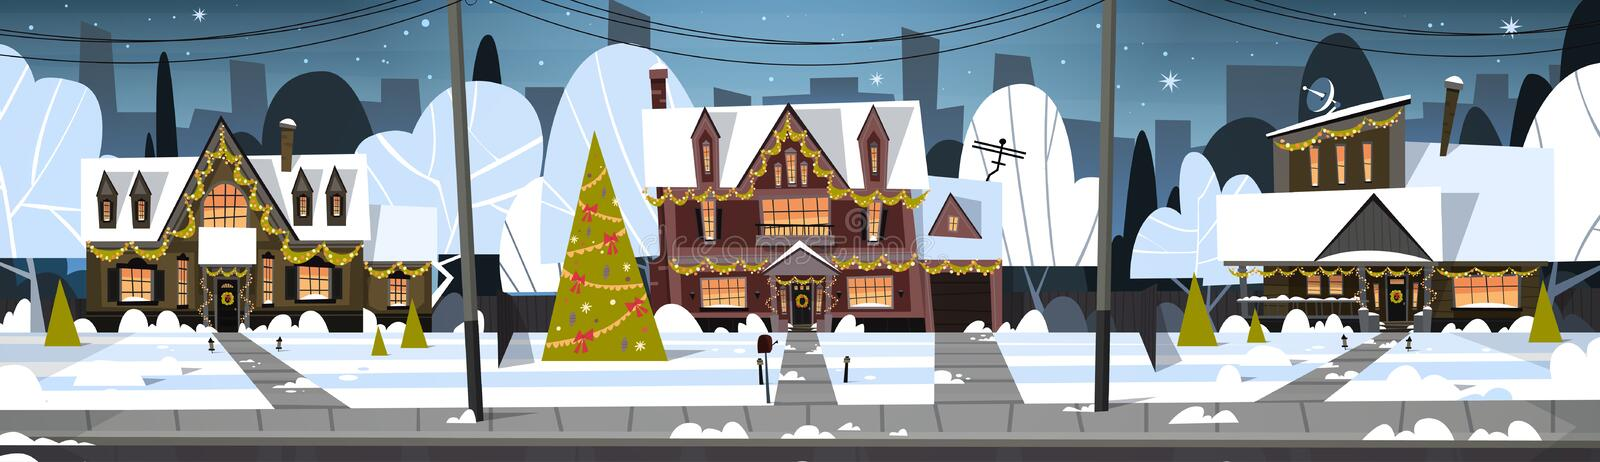 Winter Suburb Town View Snow On Houses With Decorated Pine Tree, Merry Christmas And Happy New Year Concept vector illustration